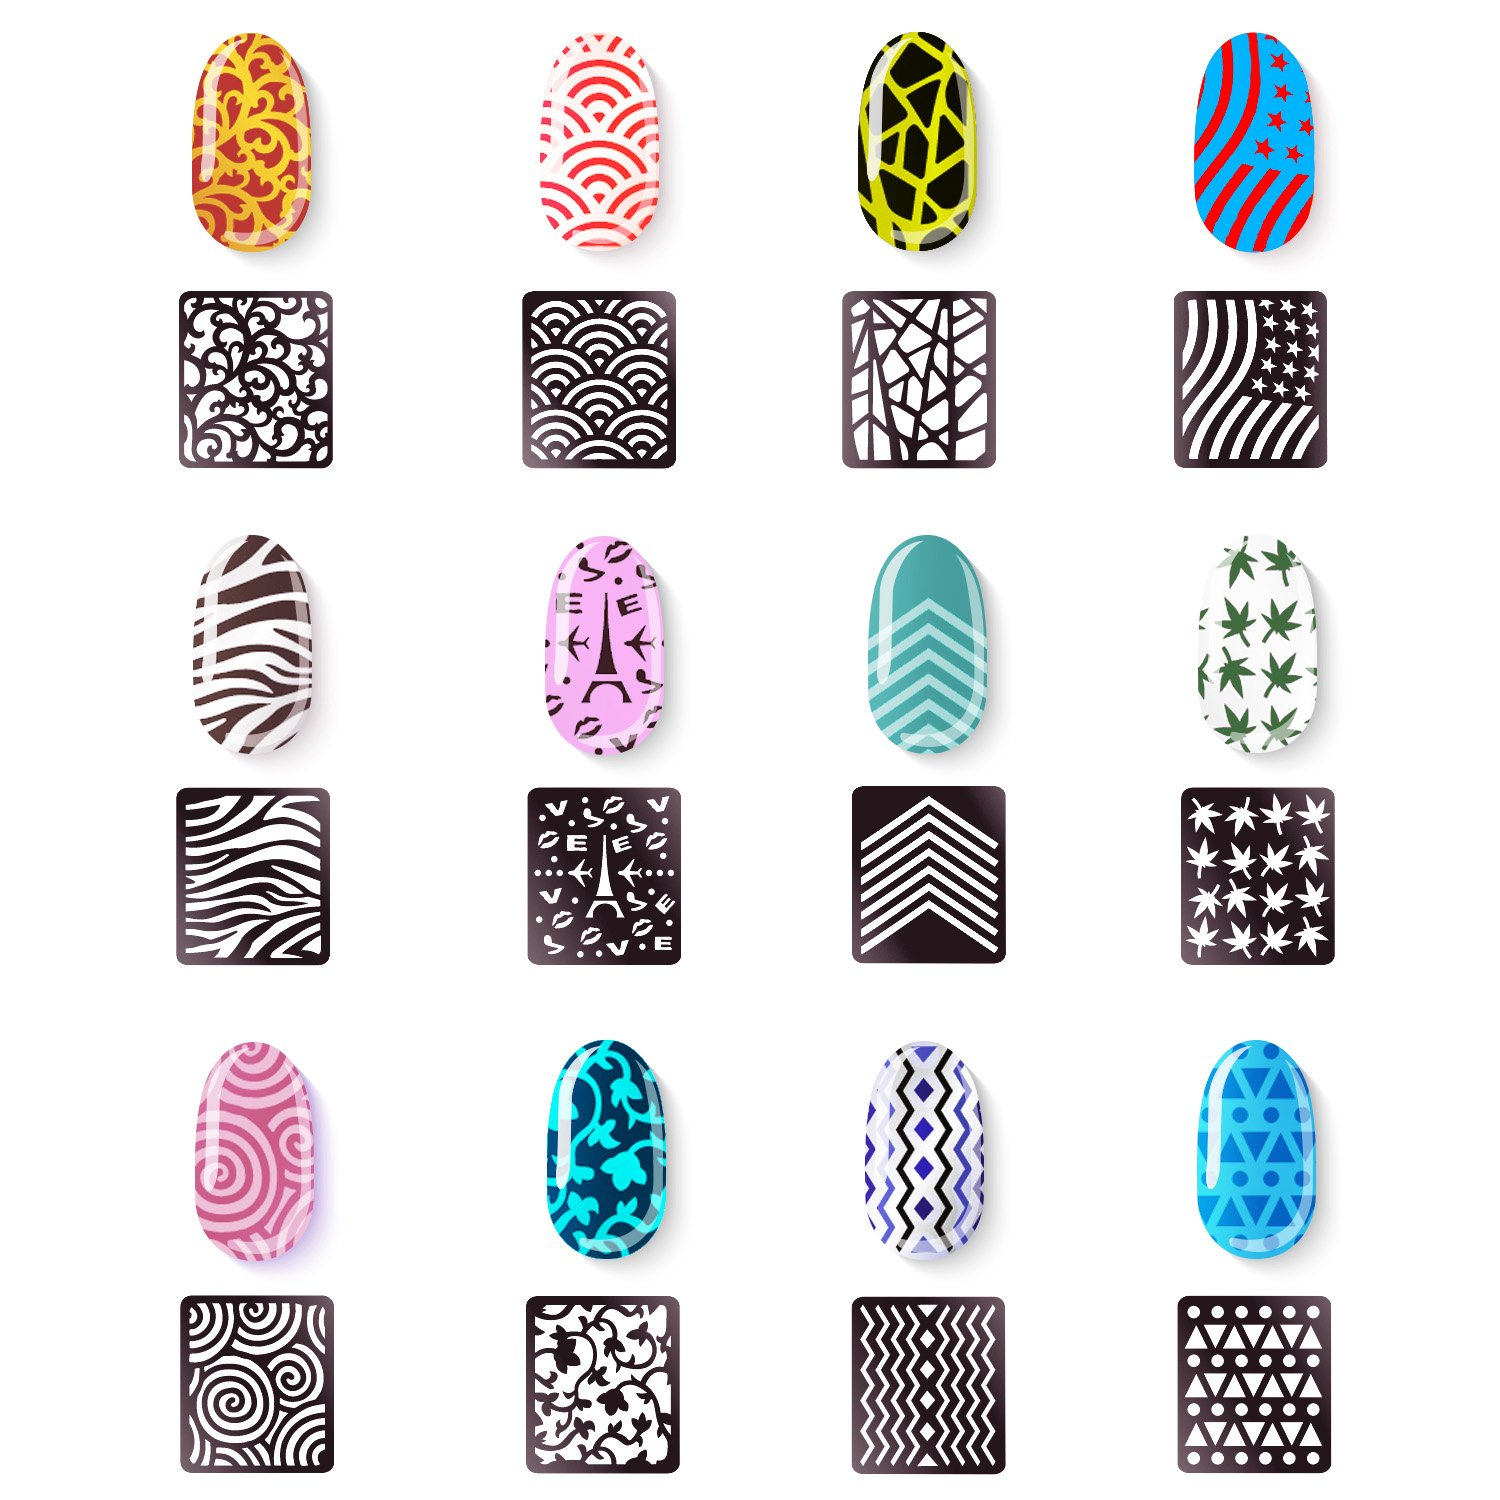 Designs Nail Vinyls Nail Stencil Sticker Sheets Set for Nail Art Design